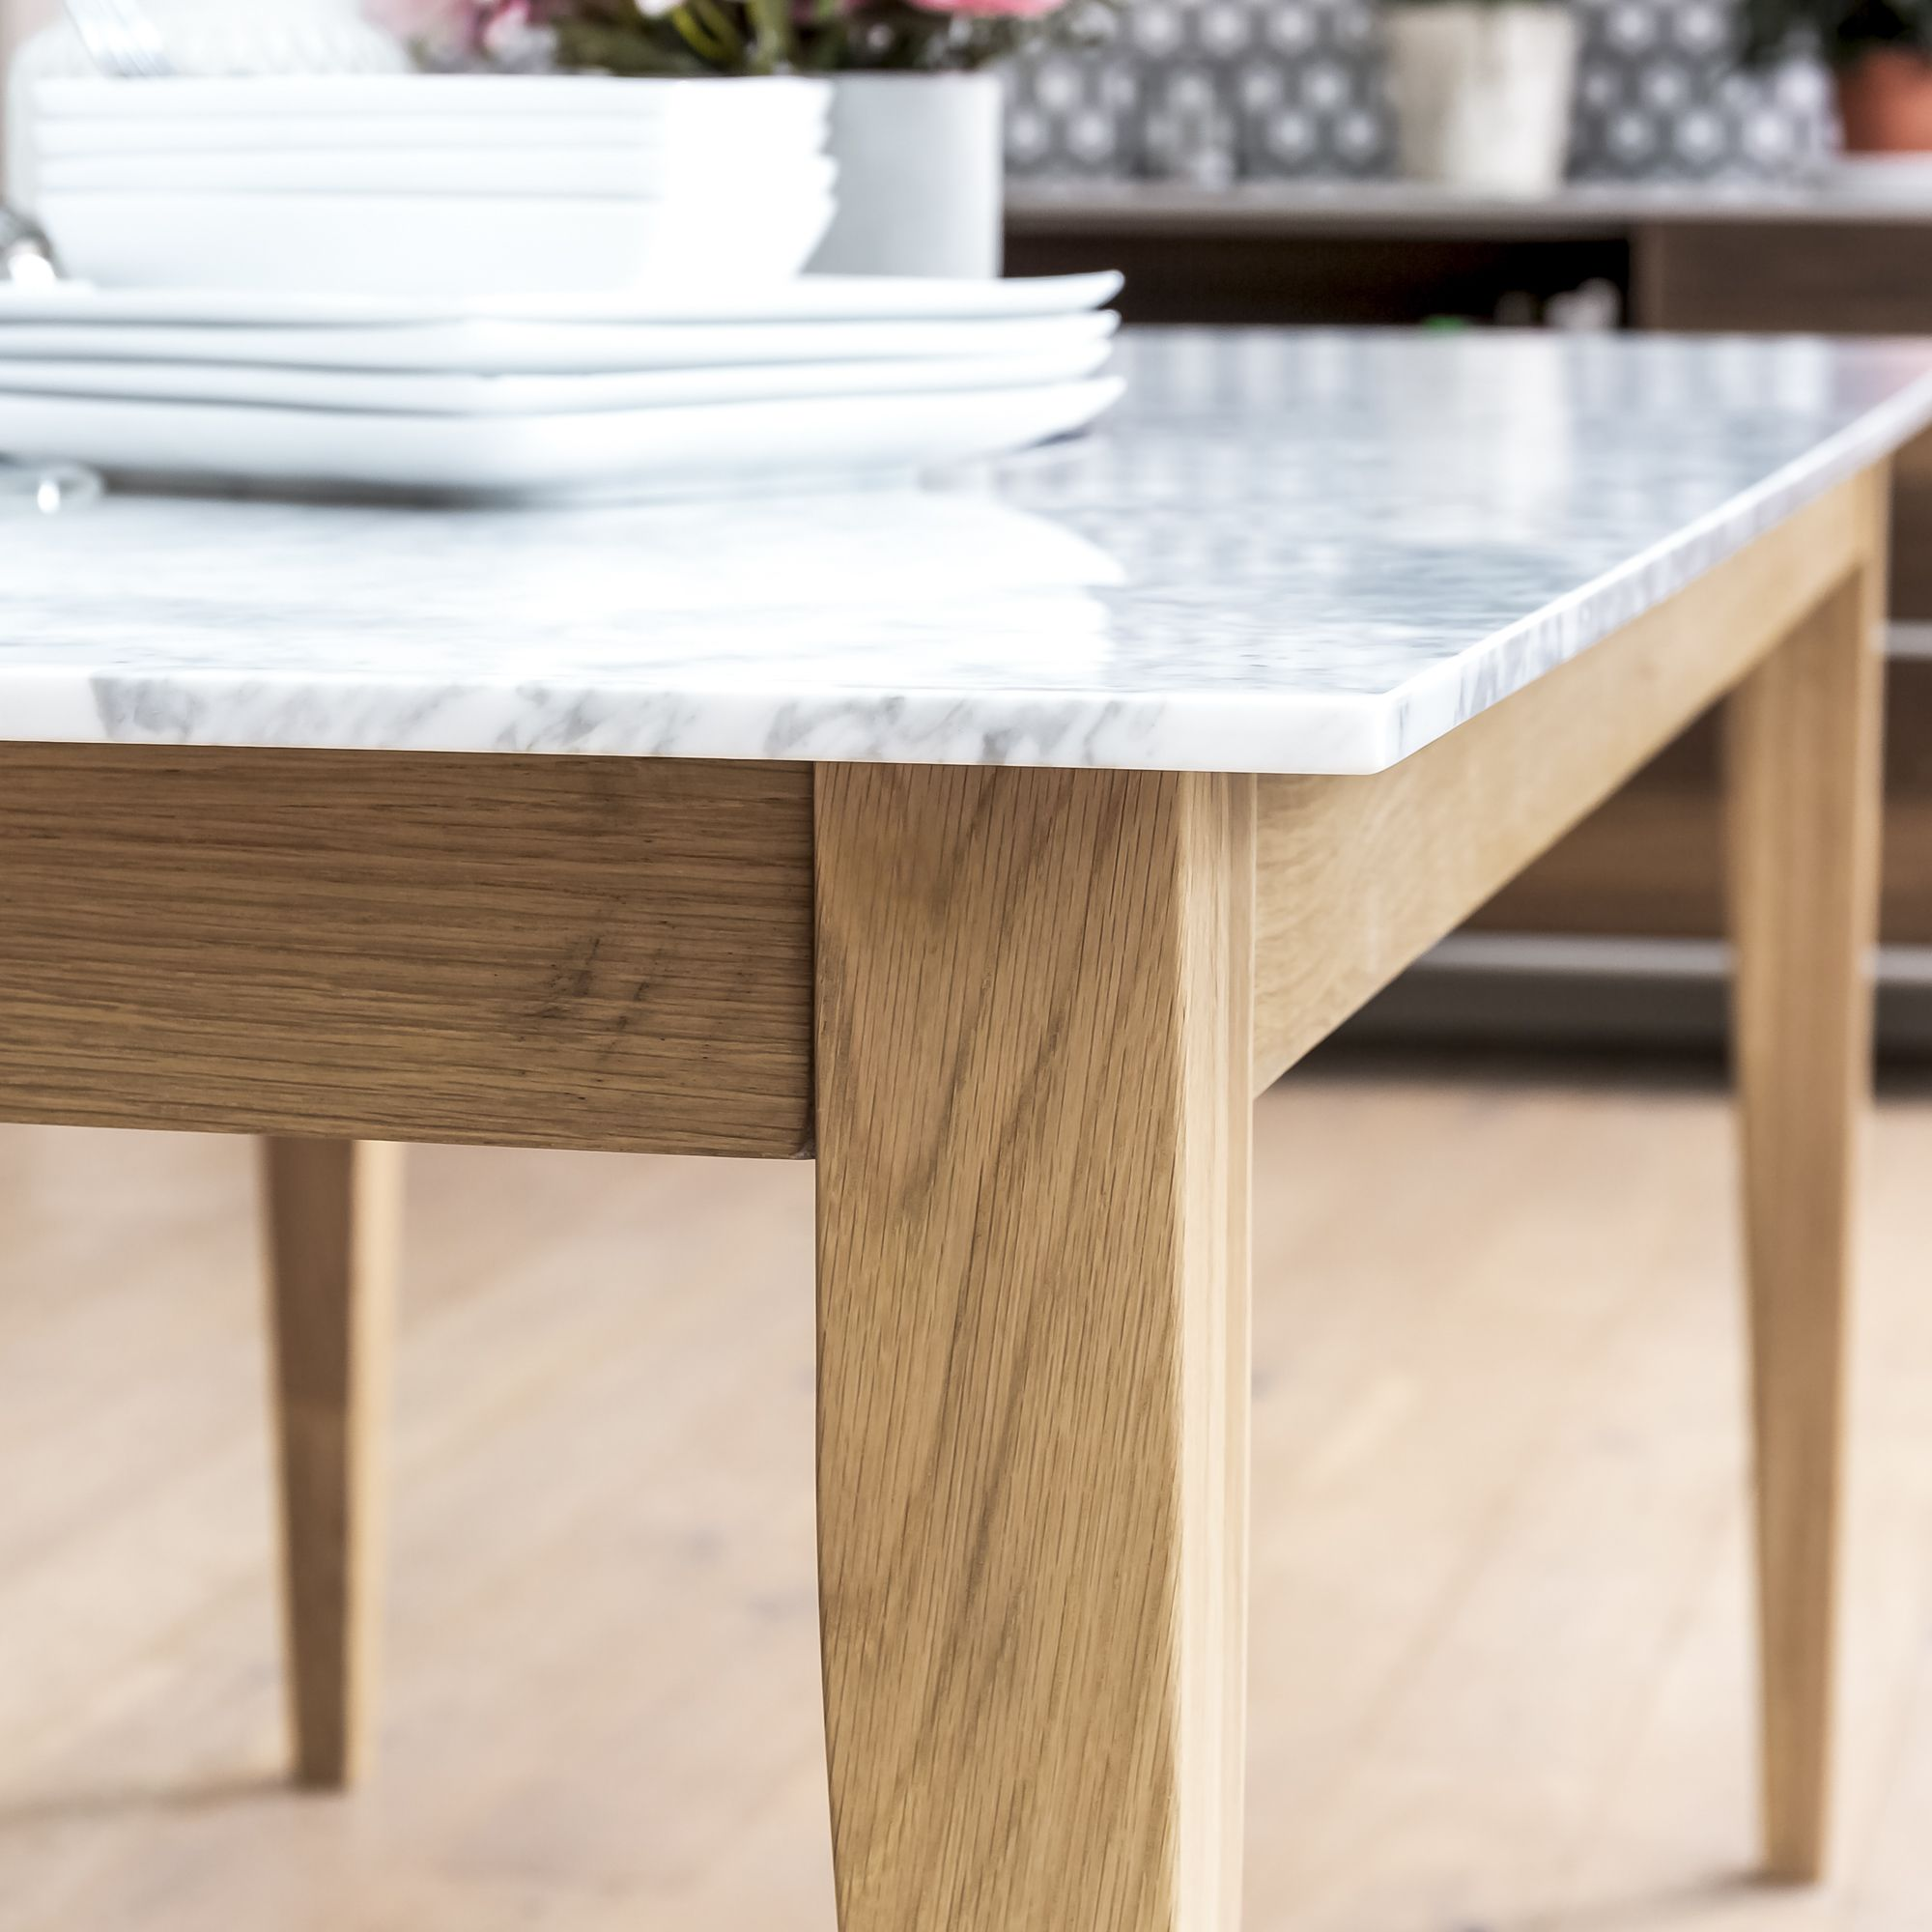 1 8m Oak Dining Table With White Carrara Marble Top Grosvenor Furniture Dining Table Marble Oak Dining Table Dining Table